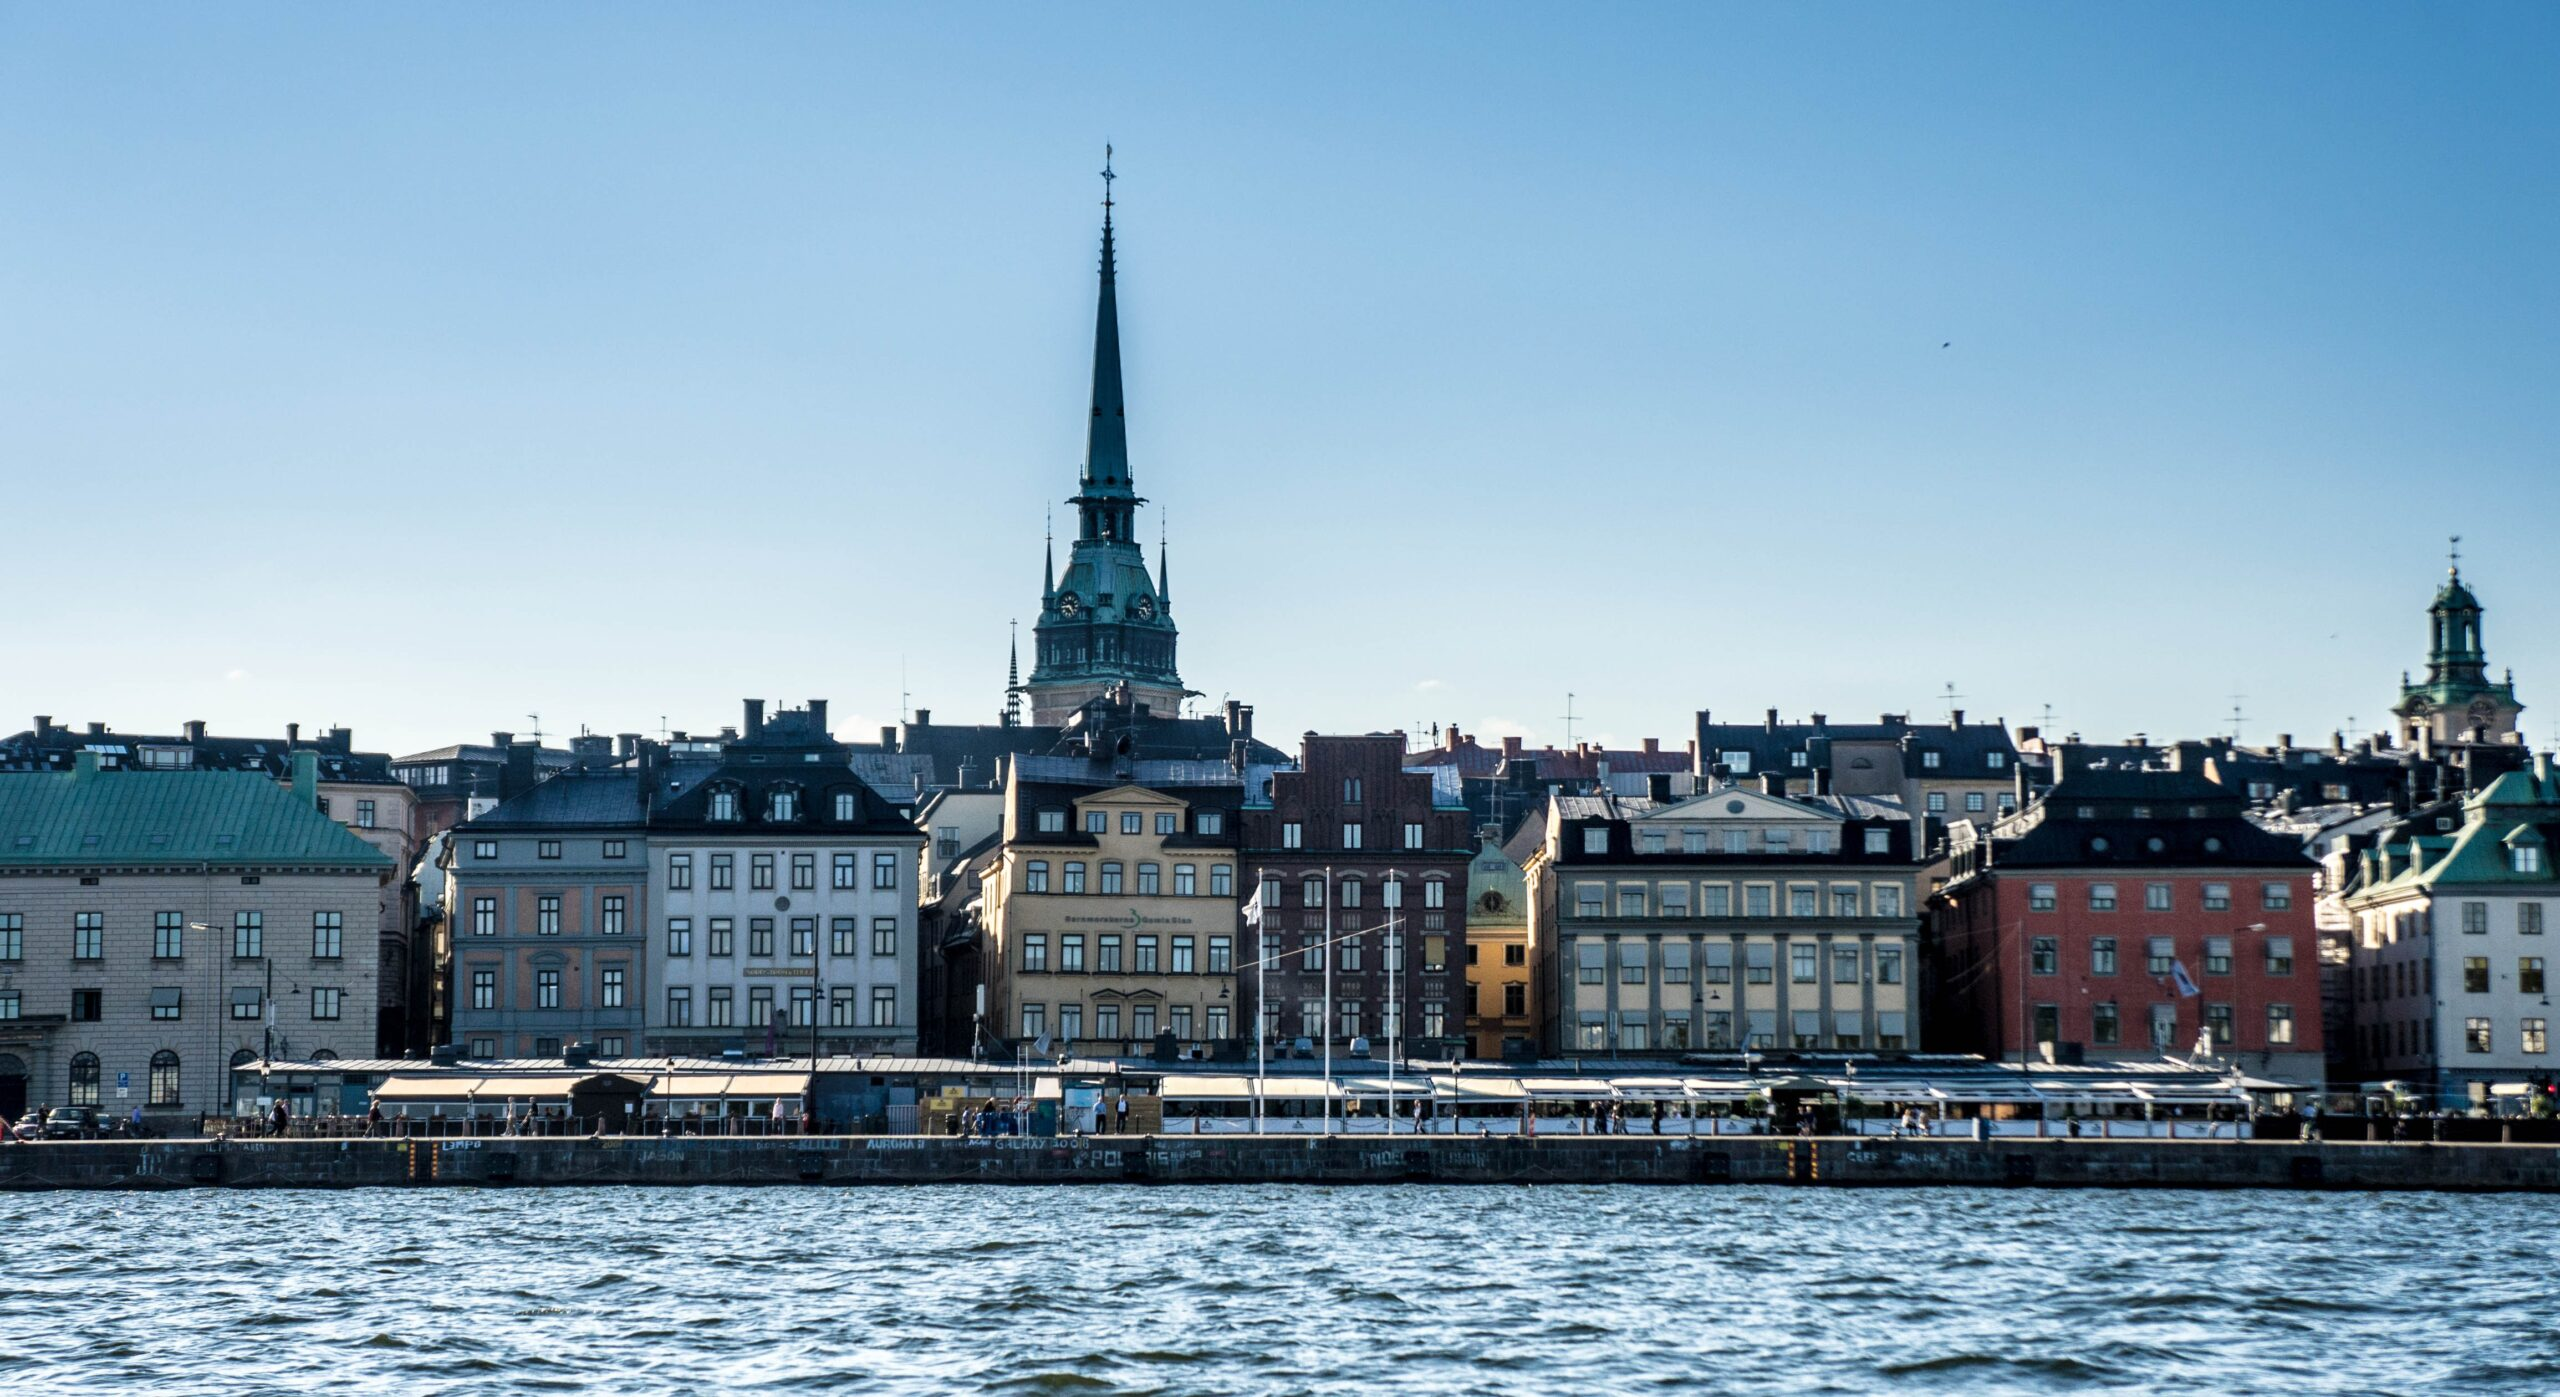 Stockholm, photo by Michelle Maria under CC BY 3.0